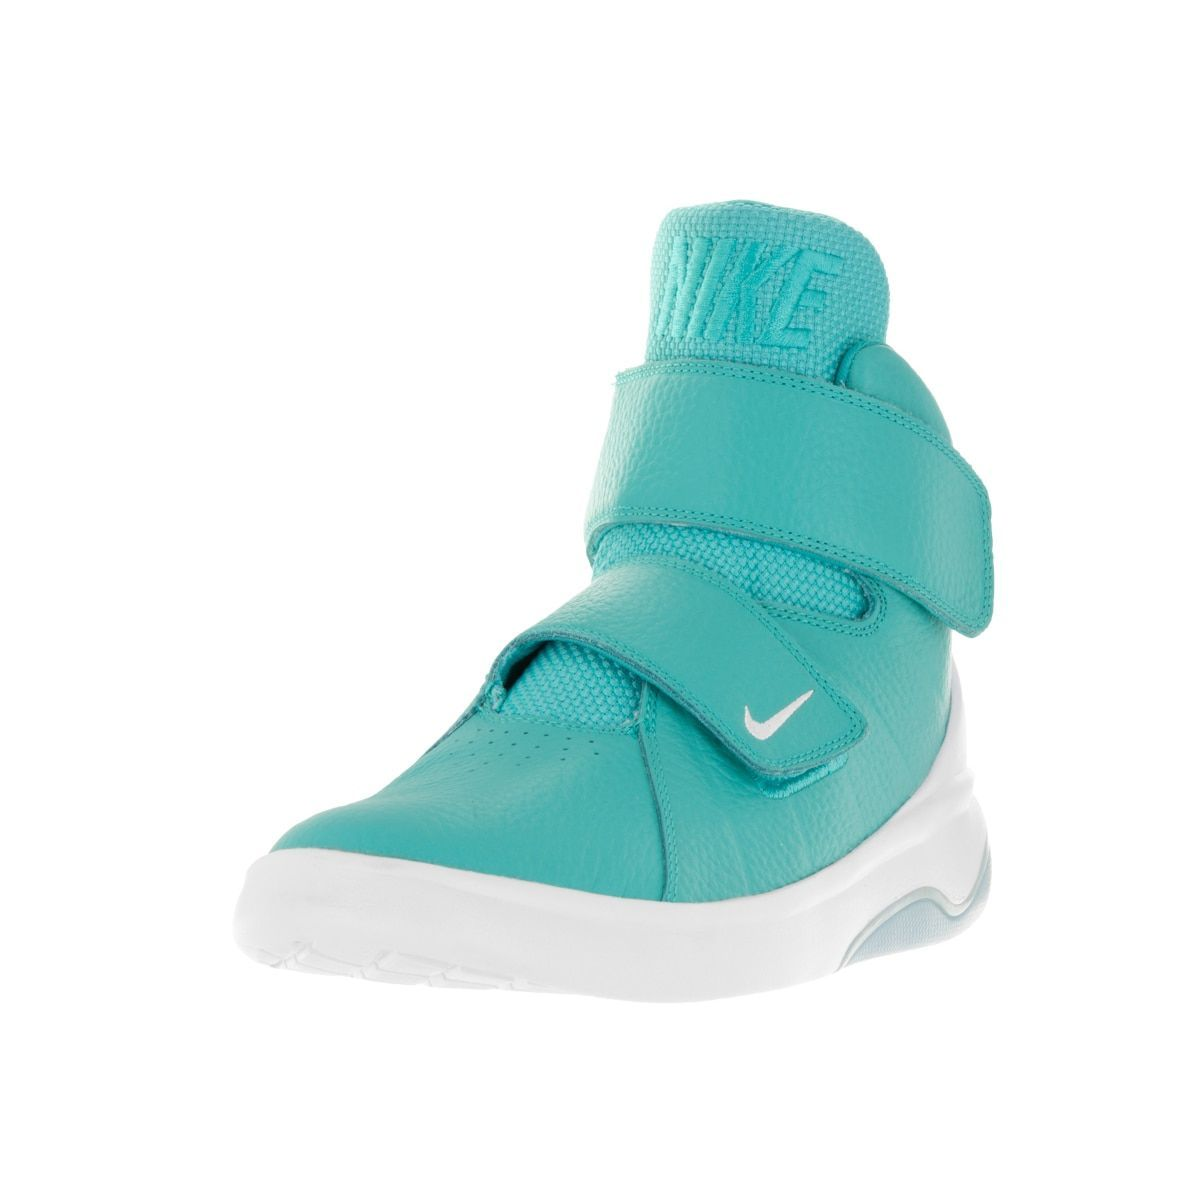 Leather Synthetic Hyper Nike And White Basketball Kids  Jade Marxman  cxwq0CE7qH 15efe610e53